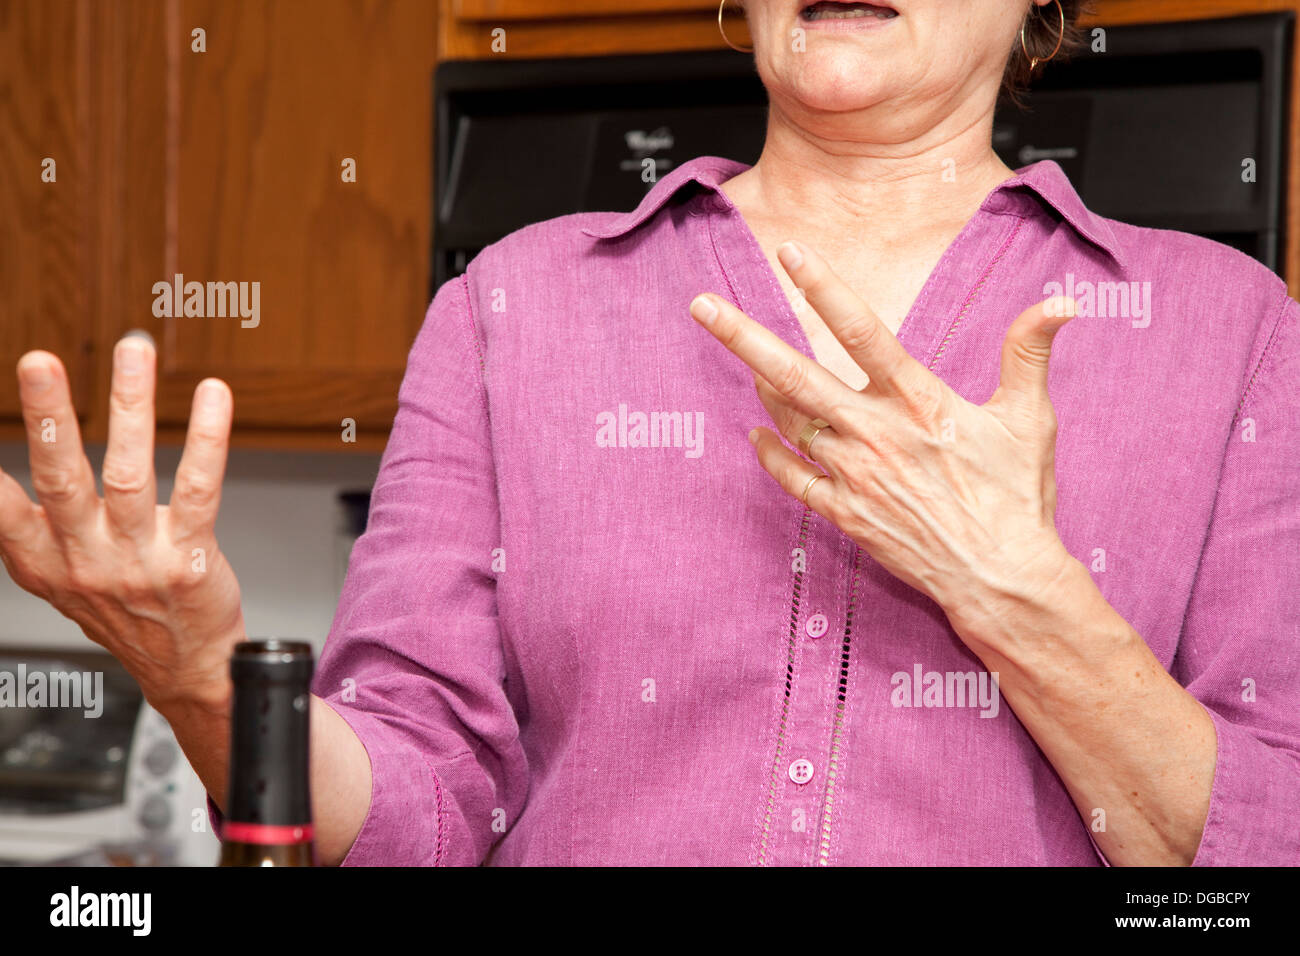 Woman expressing herself with her hands in the kitchen. St Paul Minnesota MN USA - Stock Image